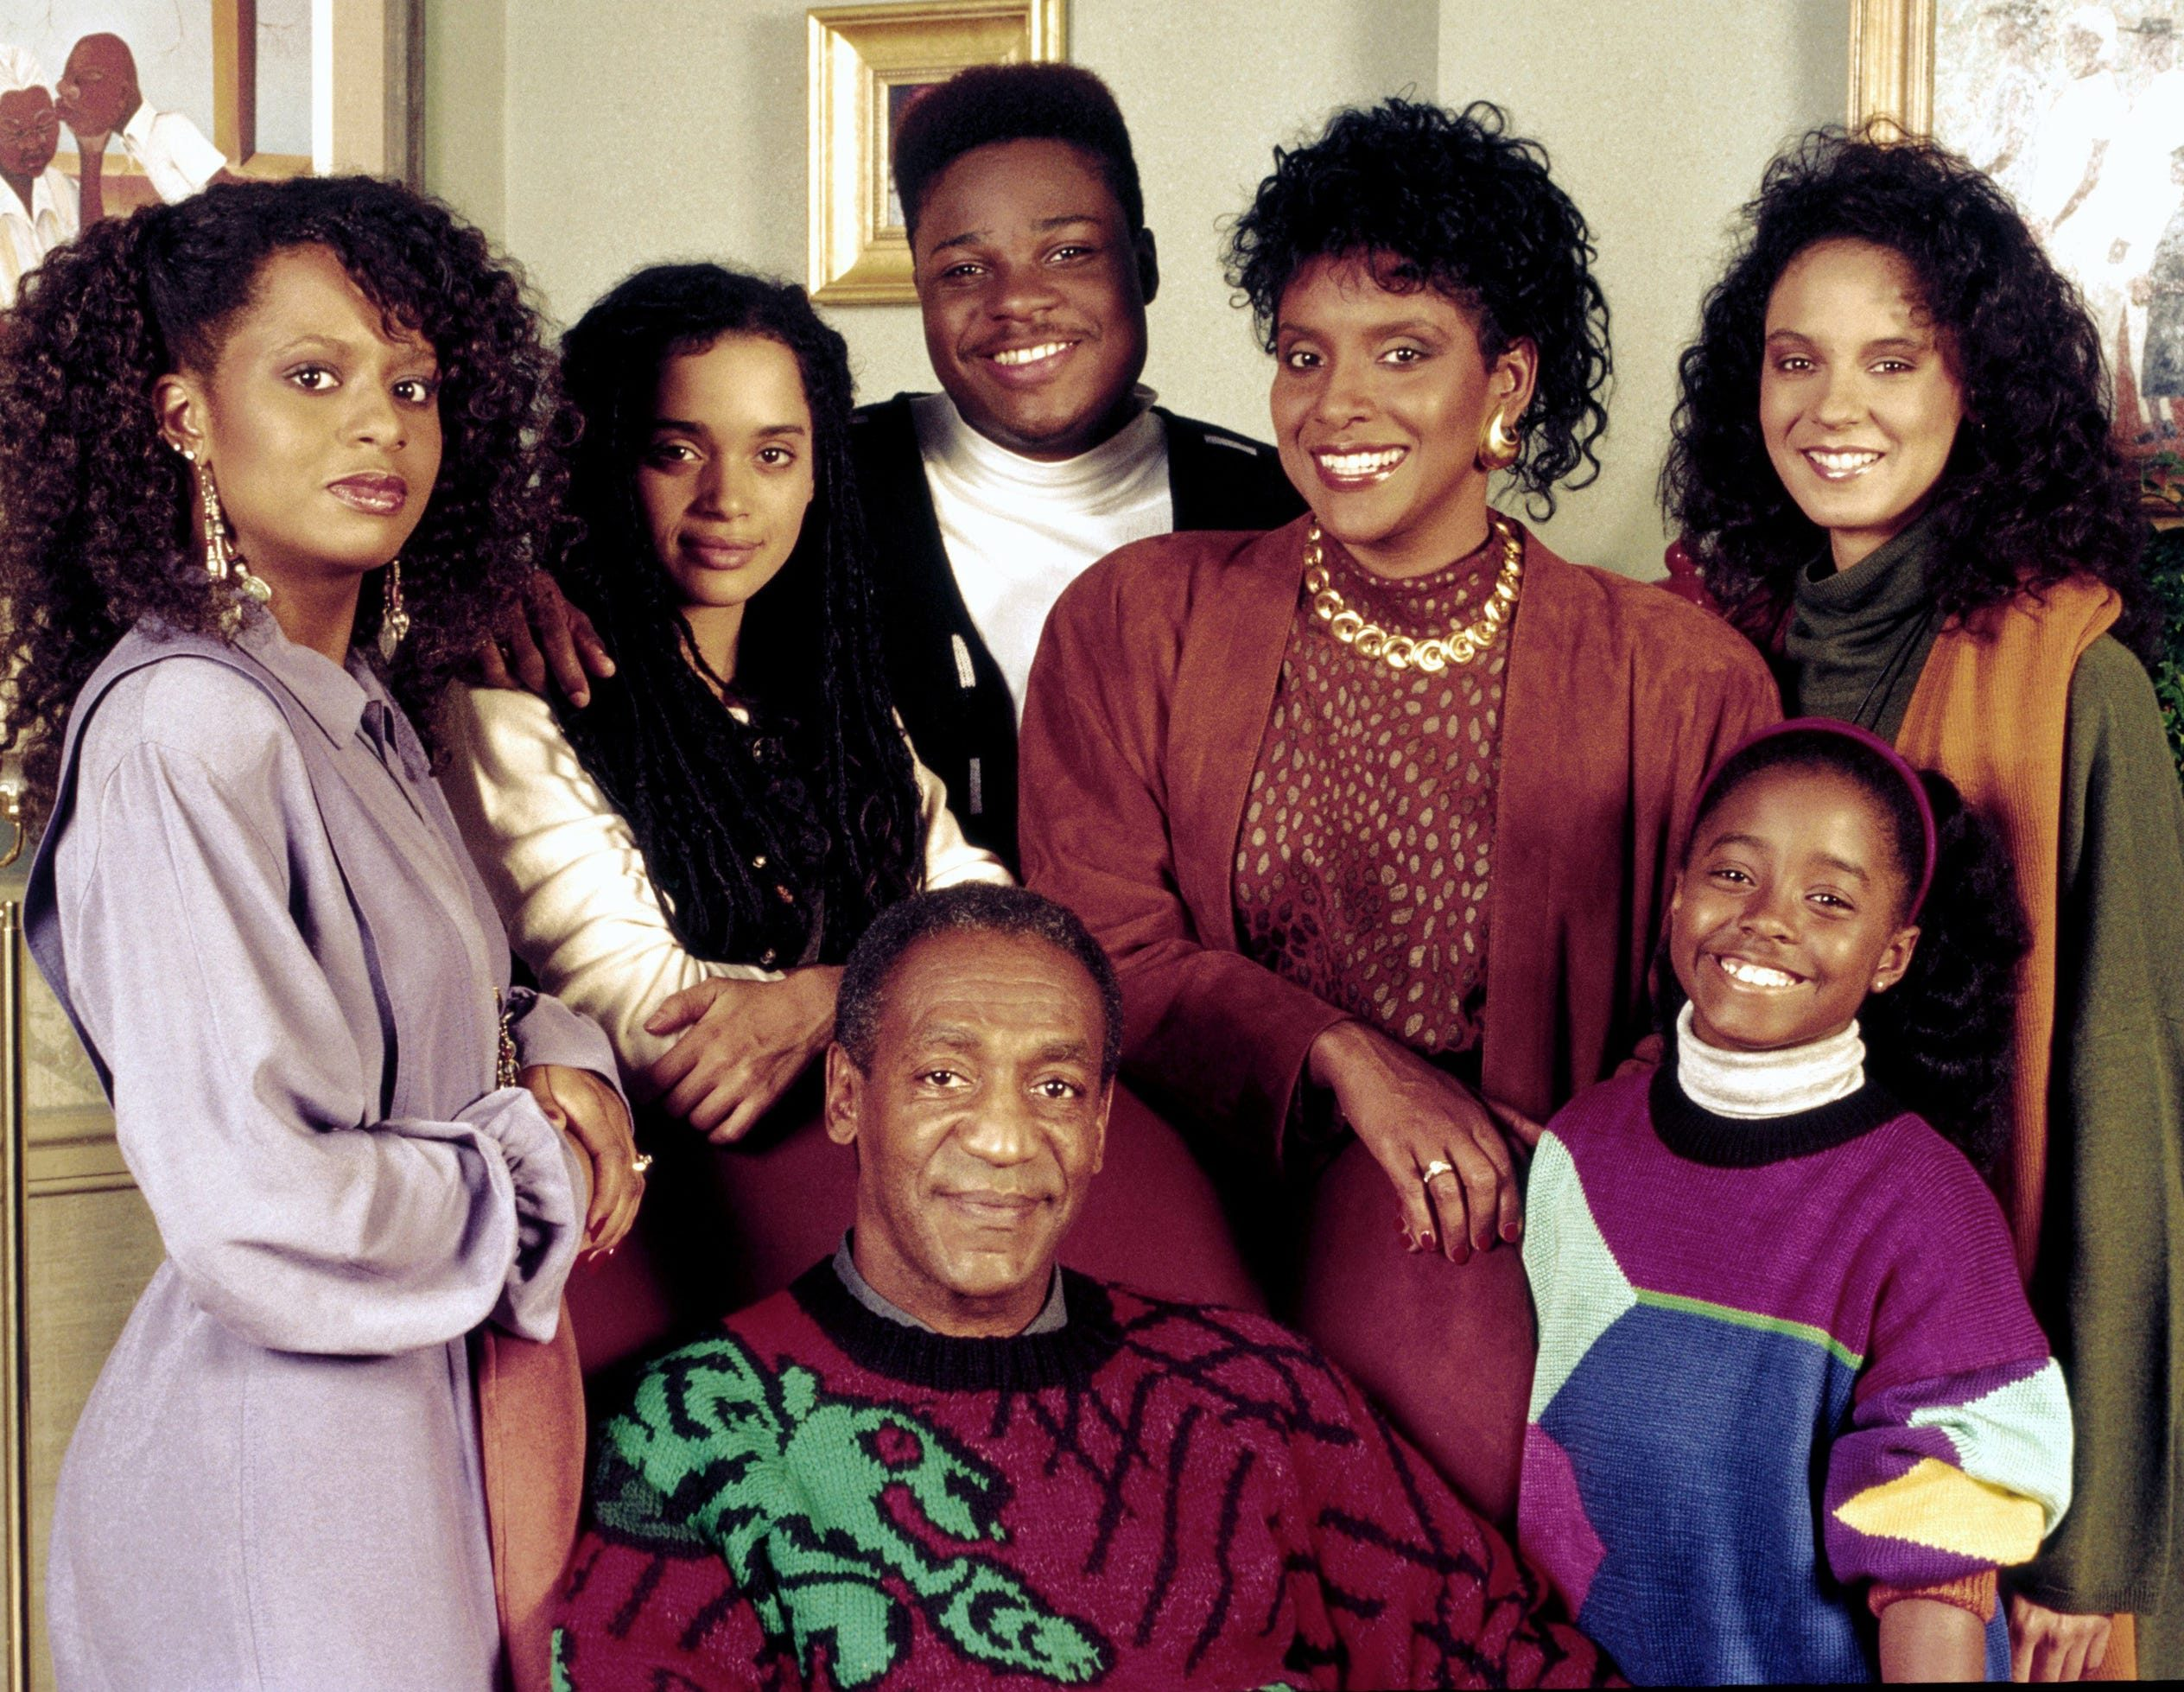 1411157978009 Untitled 1 e1616065351423 10 Things You Might Not Have Known About The Cosby Show